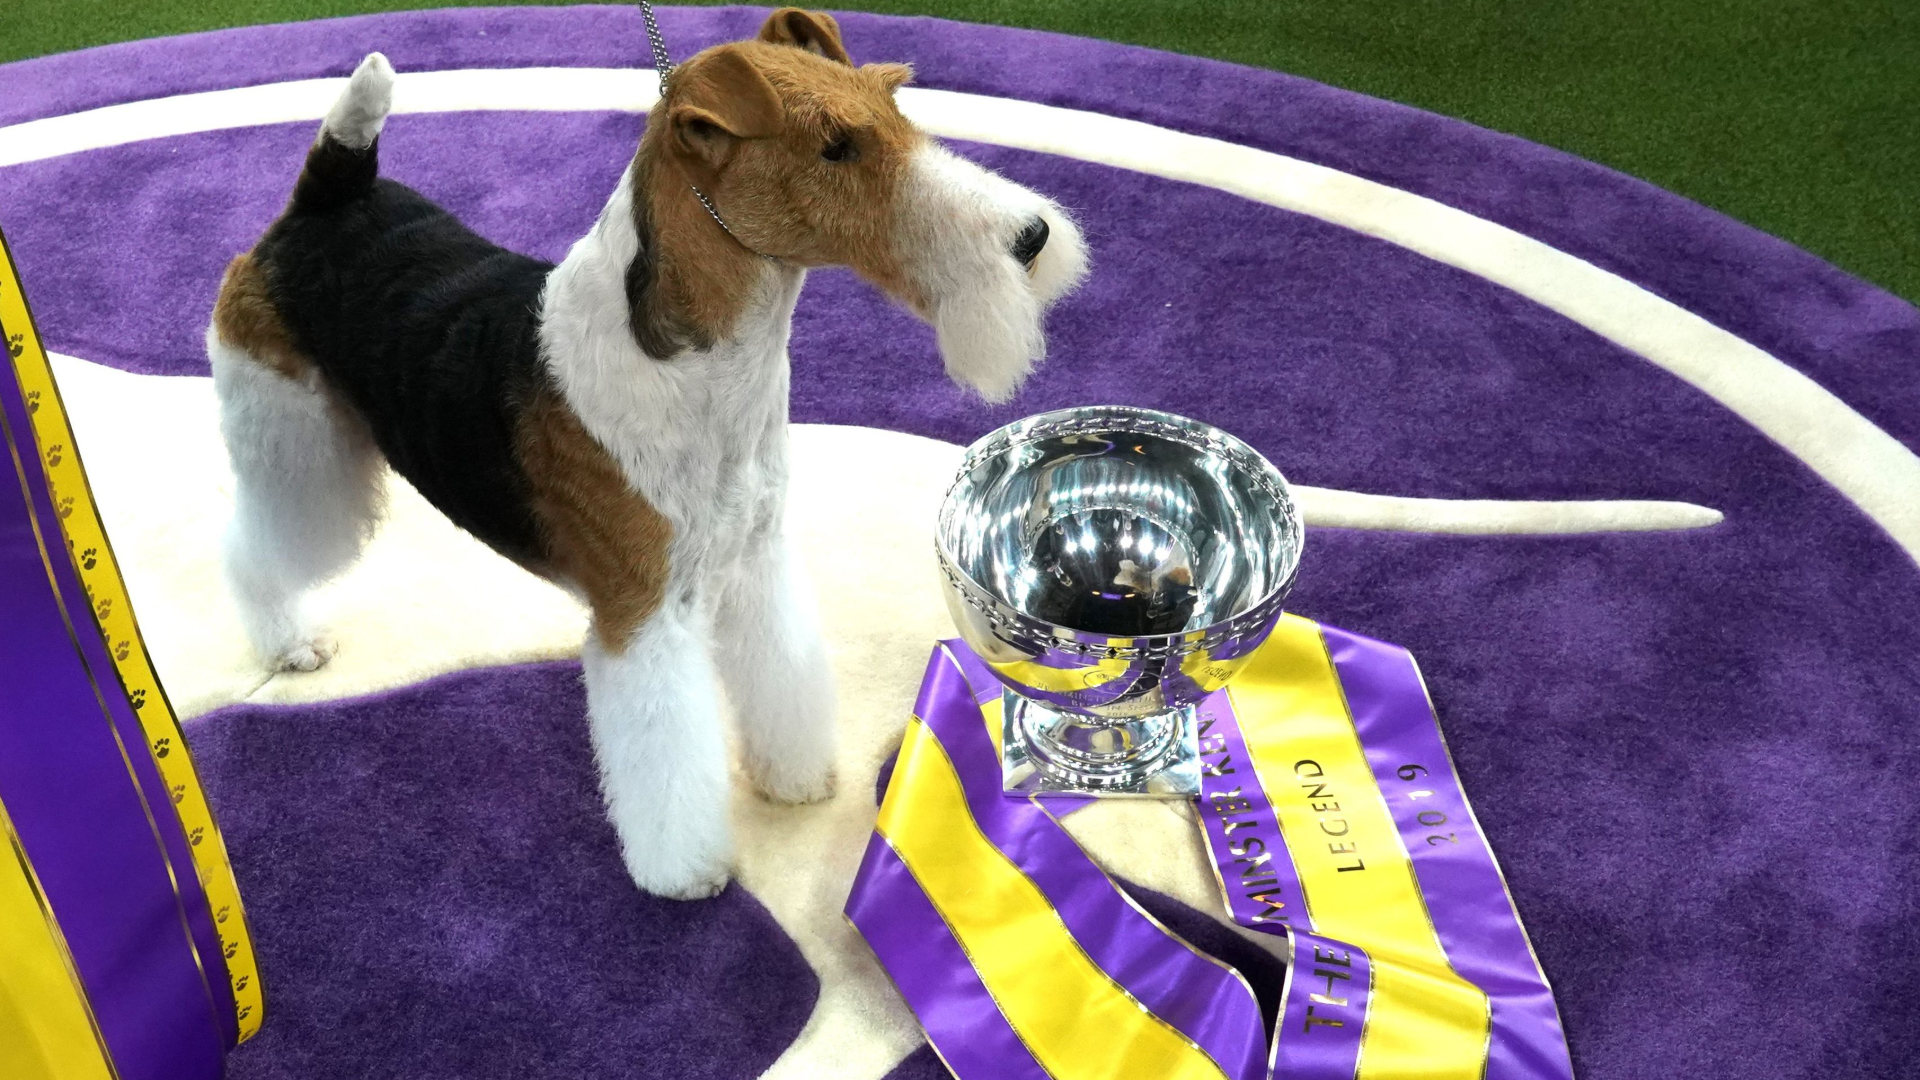 Westminster Dog Show schedule 2020: Dates, TV channels, live stream list of past winners